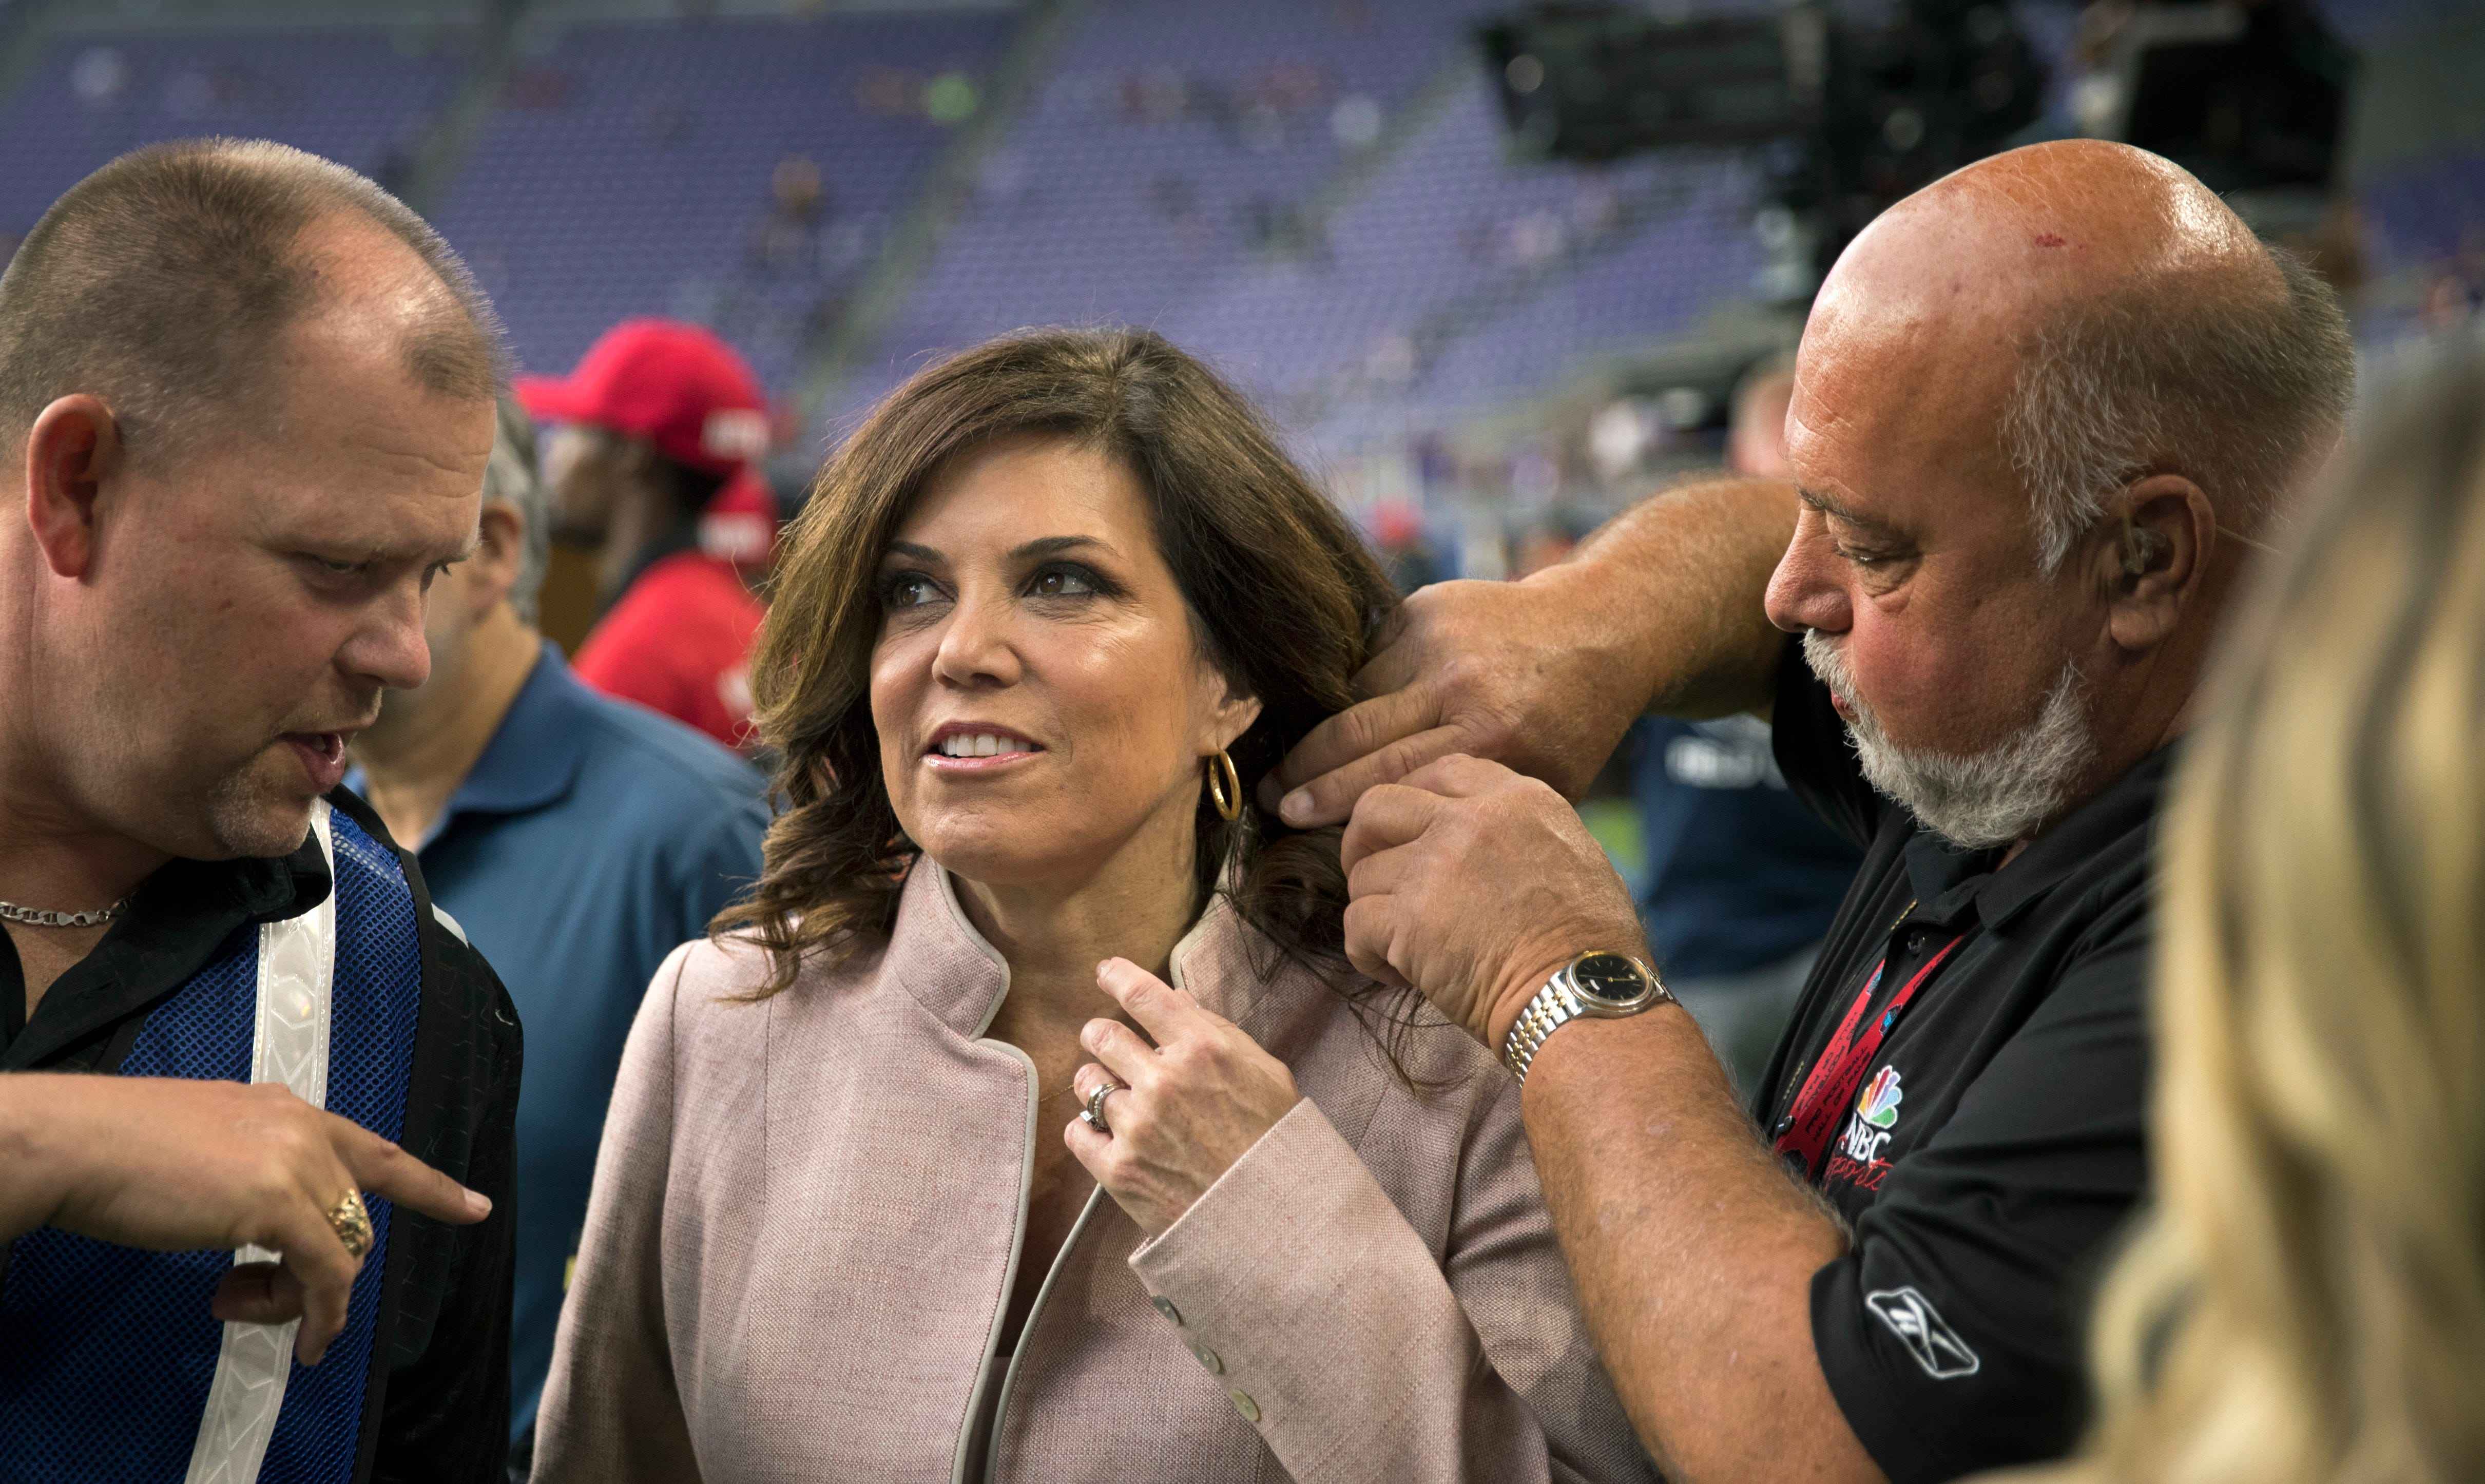 For Tafoya, preparation is key going into 4th Super Bowl